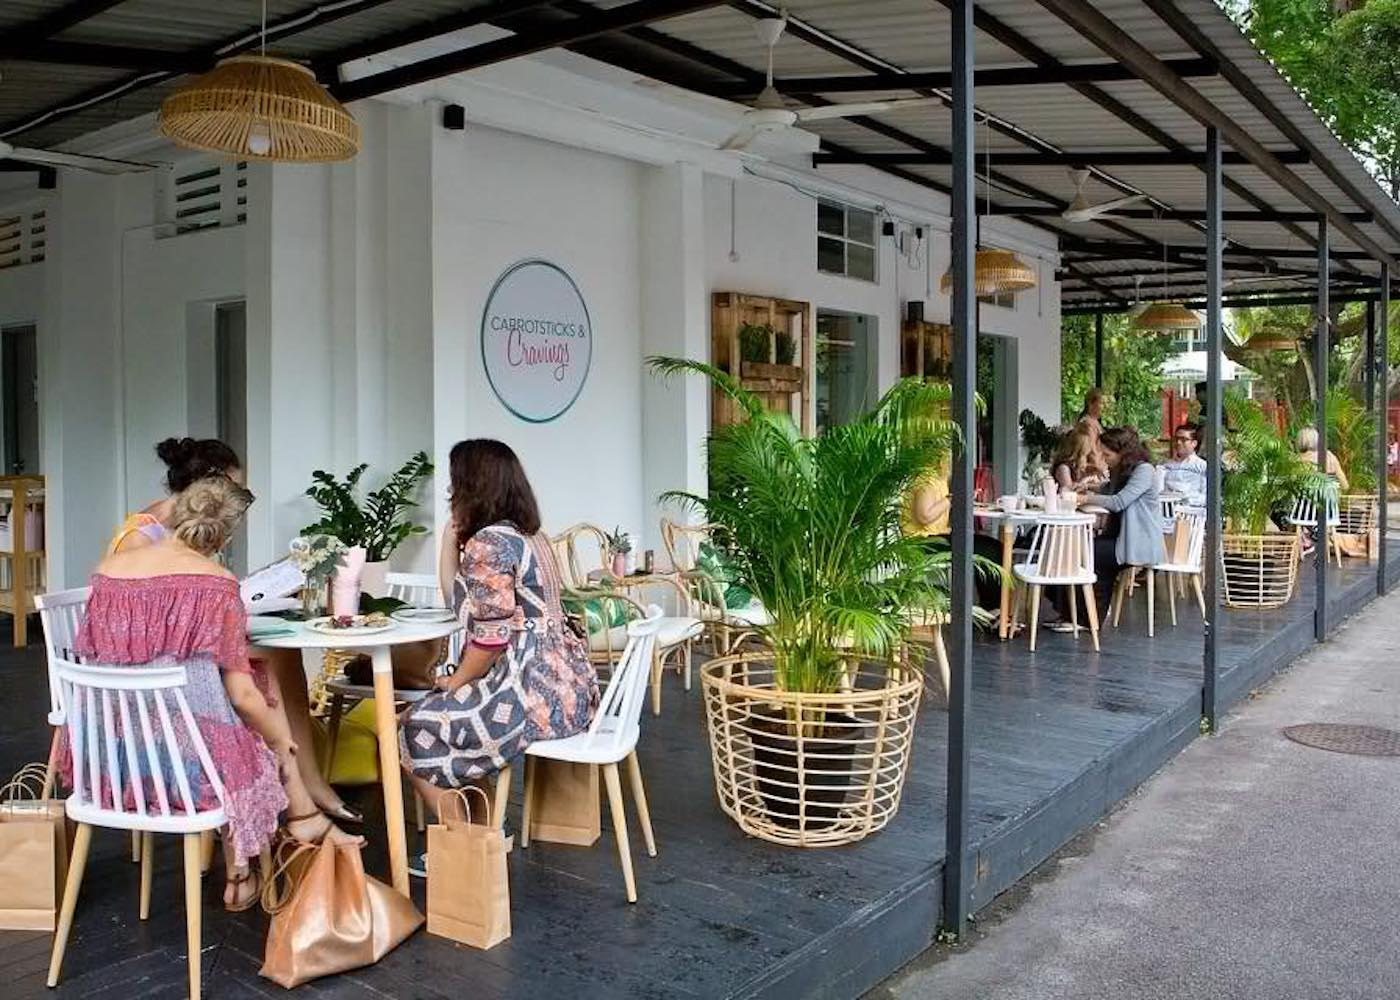 Carrotsticks and Cravings Cafe | Where to eat, shop and play in Dempsey Hill